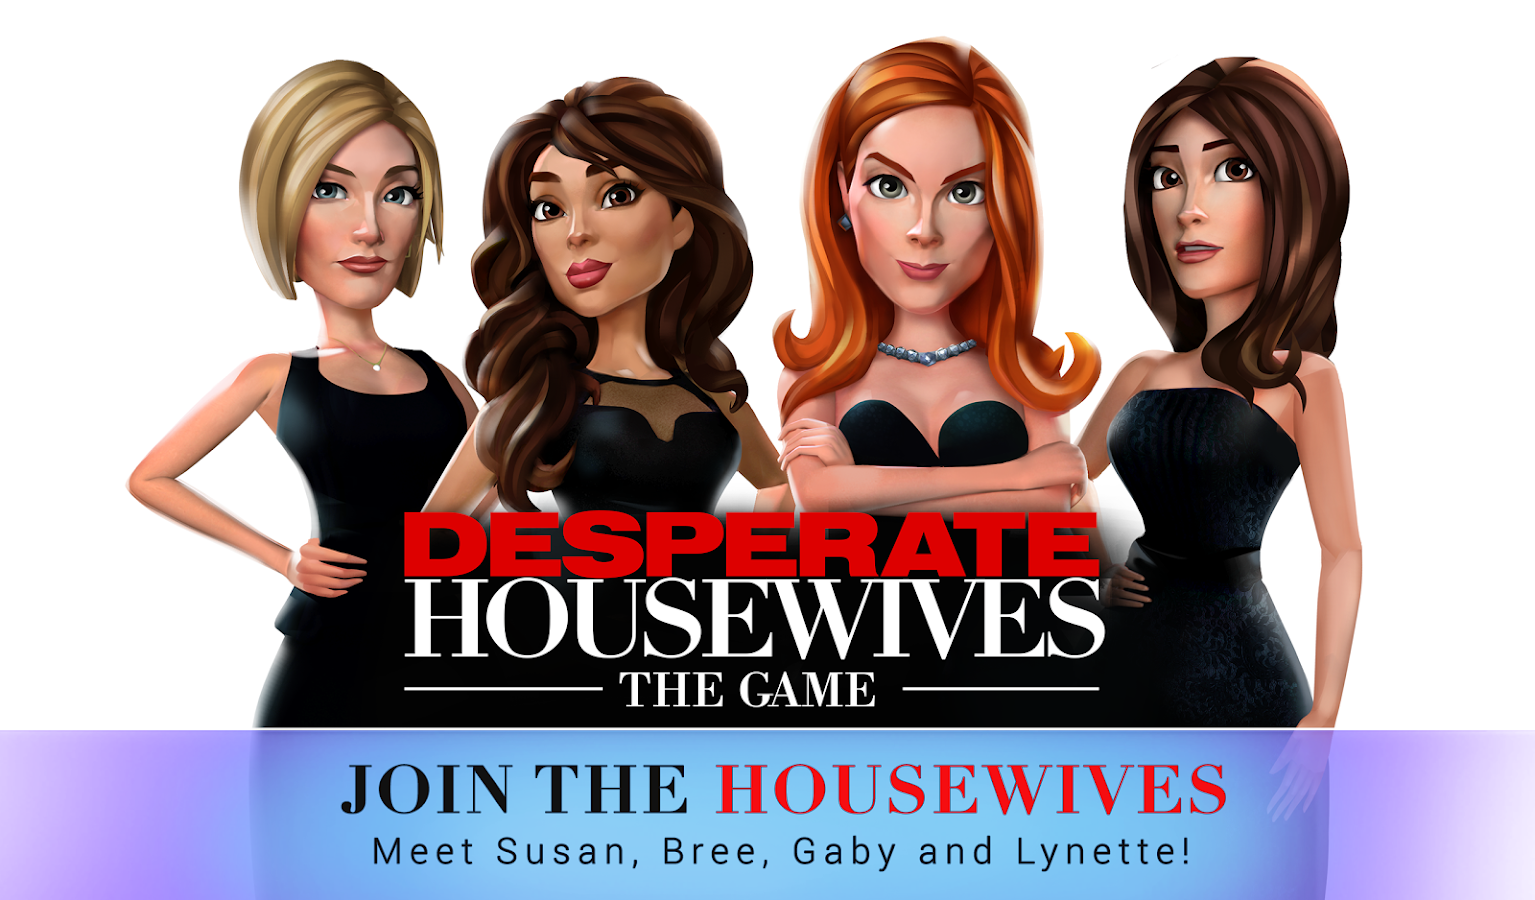 Desperate Housewives: The Game Screenshot 12